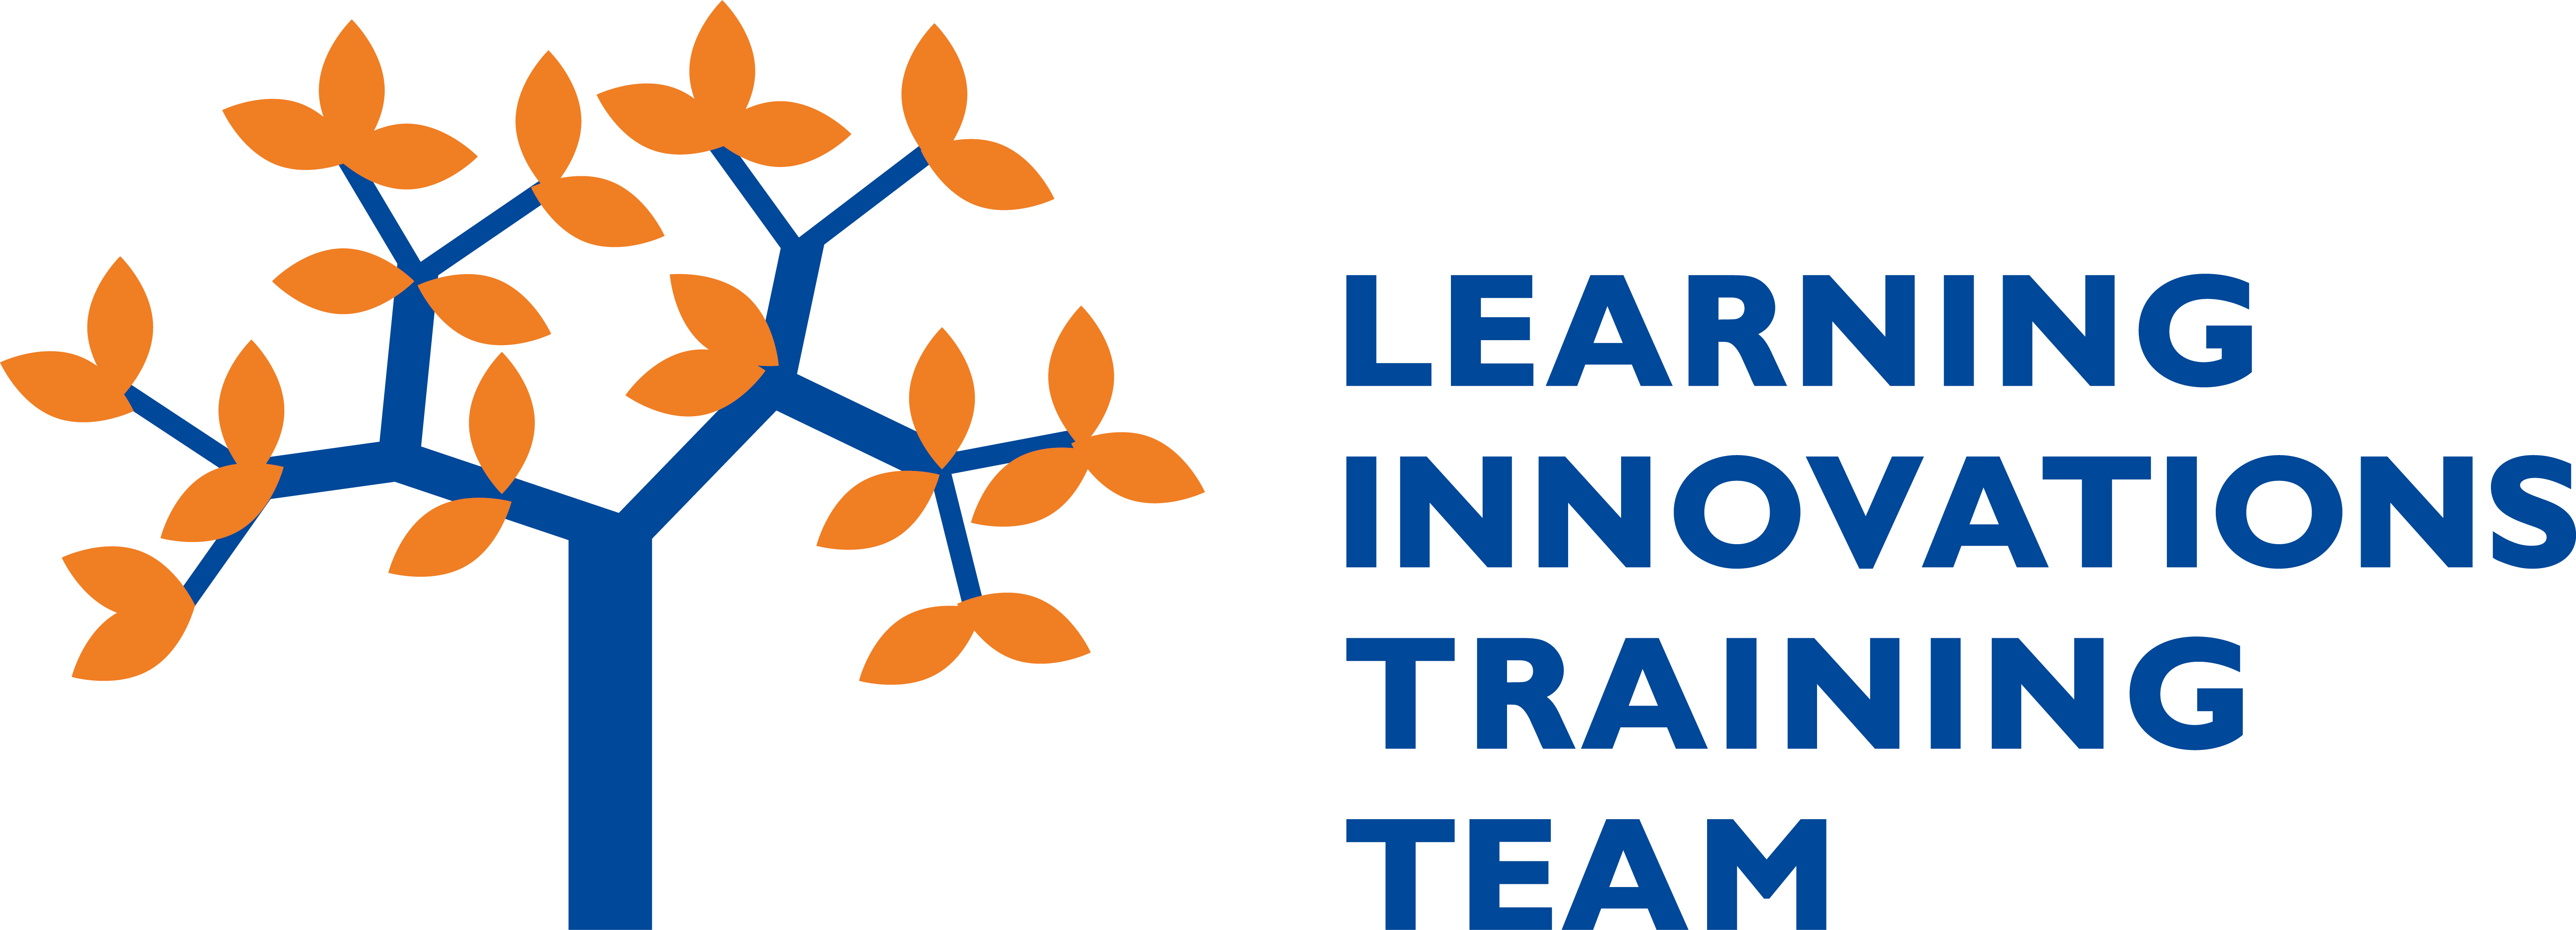 Learning Innovations Training Team